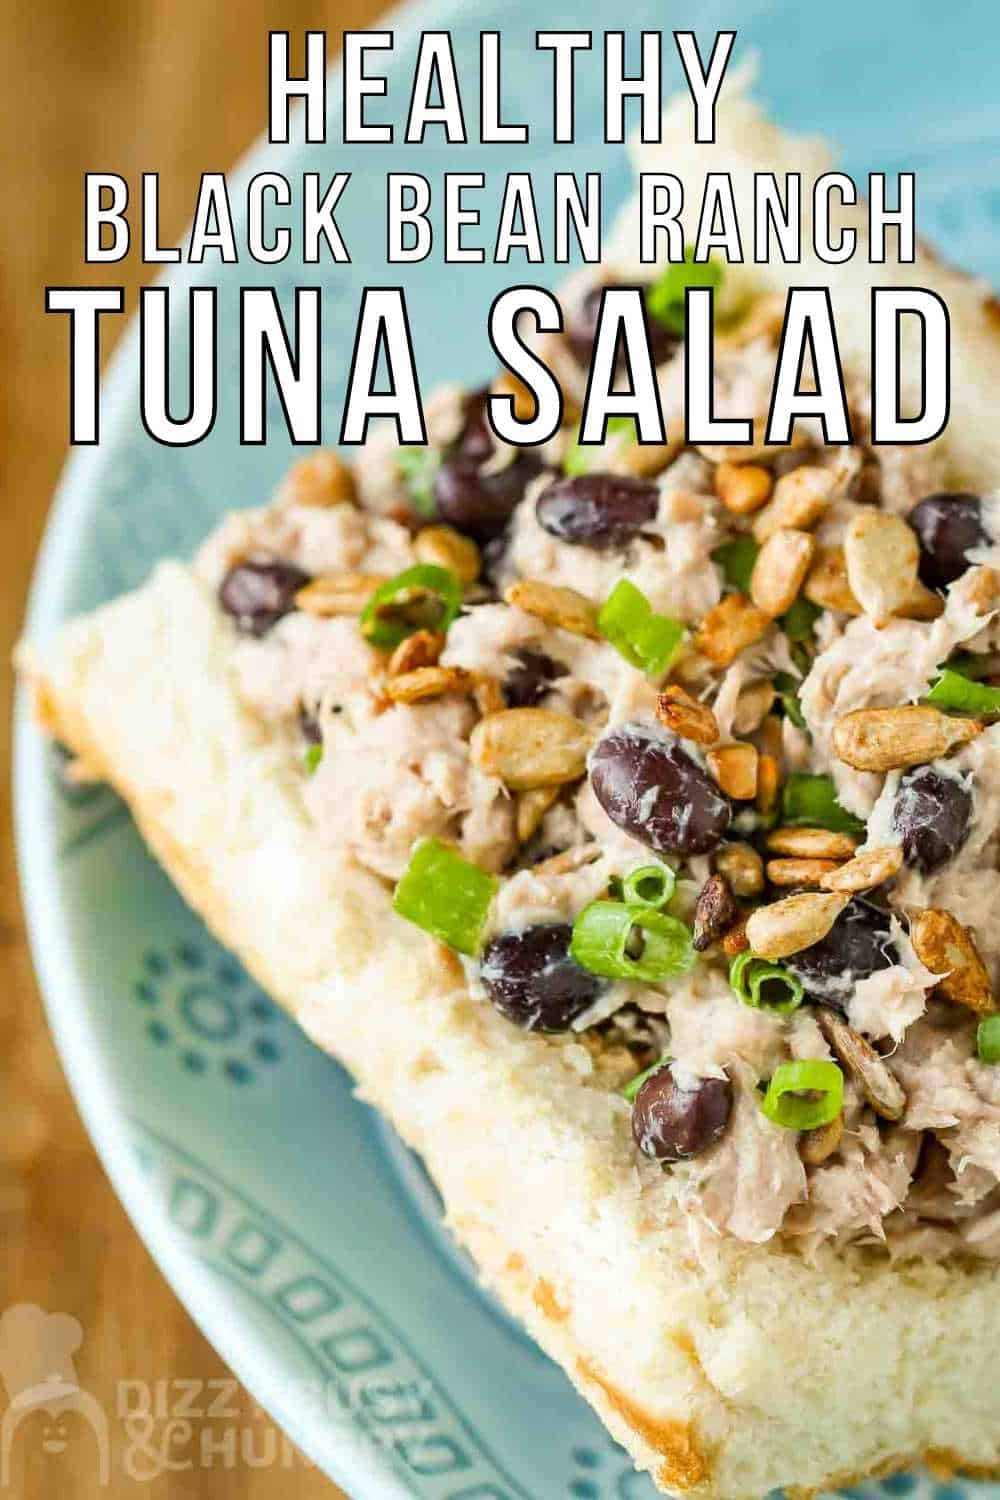 Close up view of tuna salad sandwich garnished with herbs on a light blue plate.